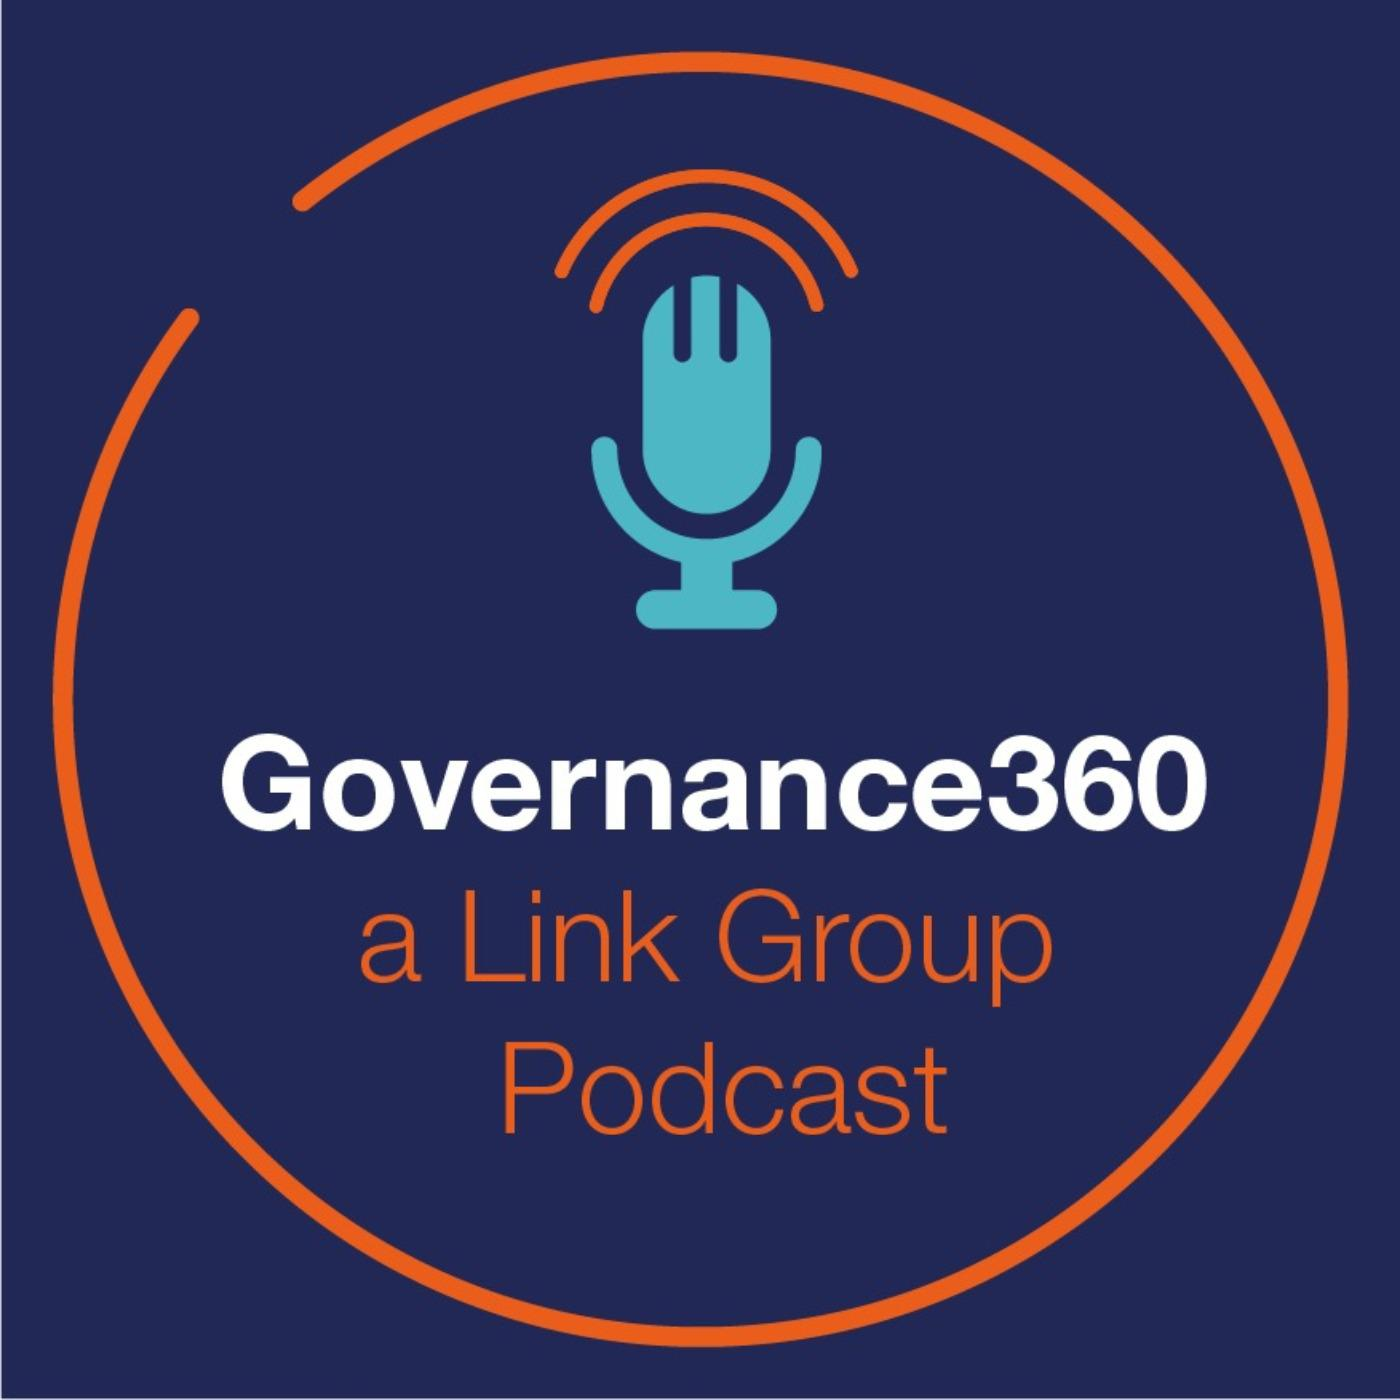 Top Business Podcasts 2020.Governance360 Podcast Link Group Listen Notes